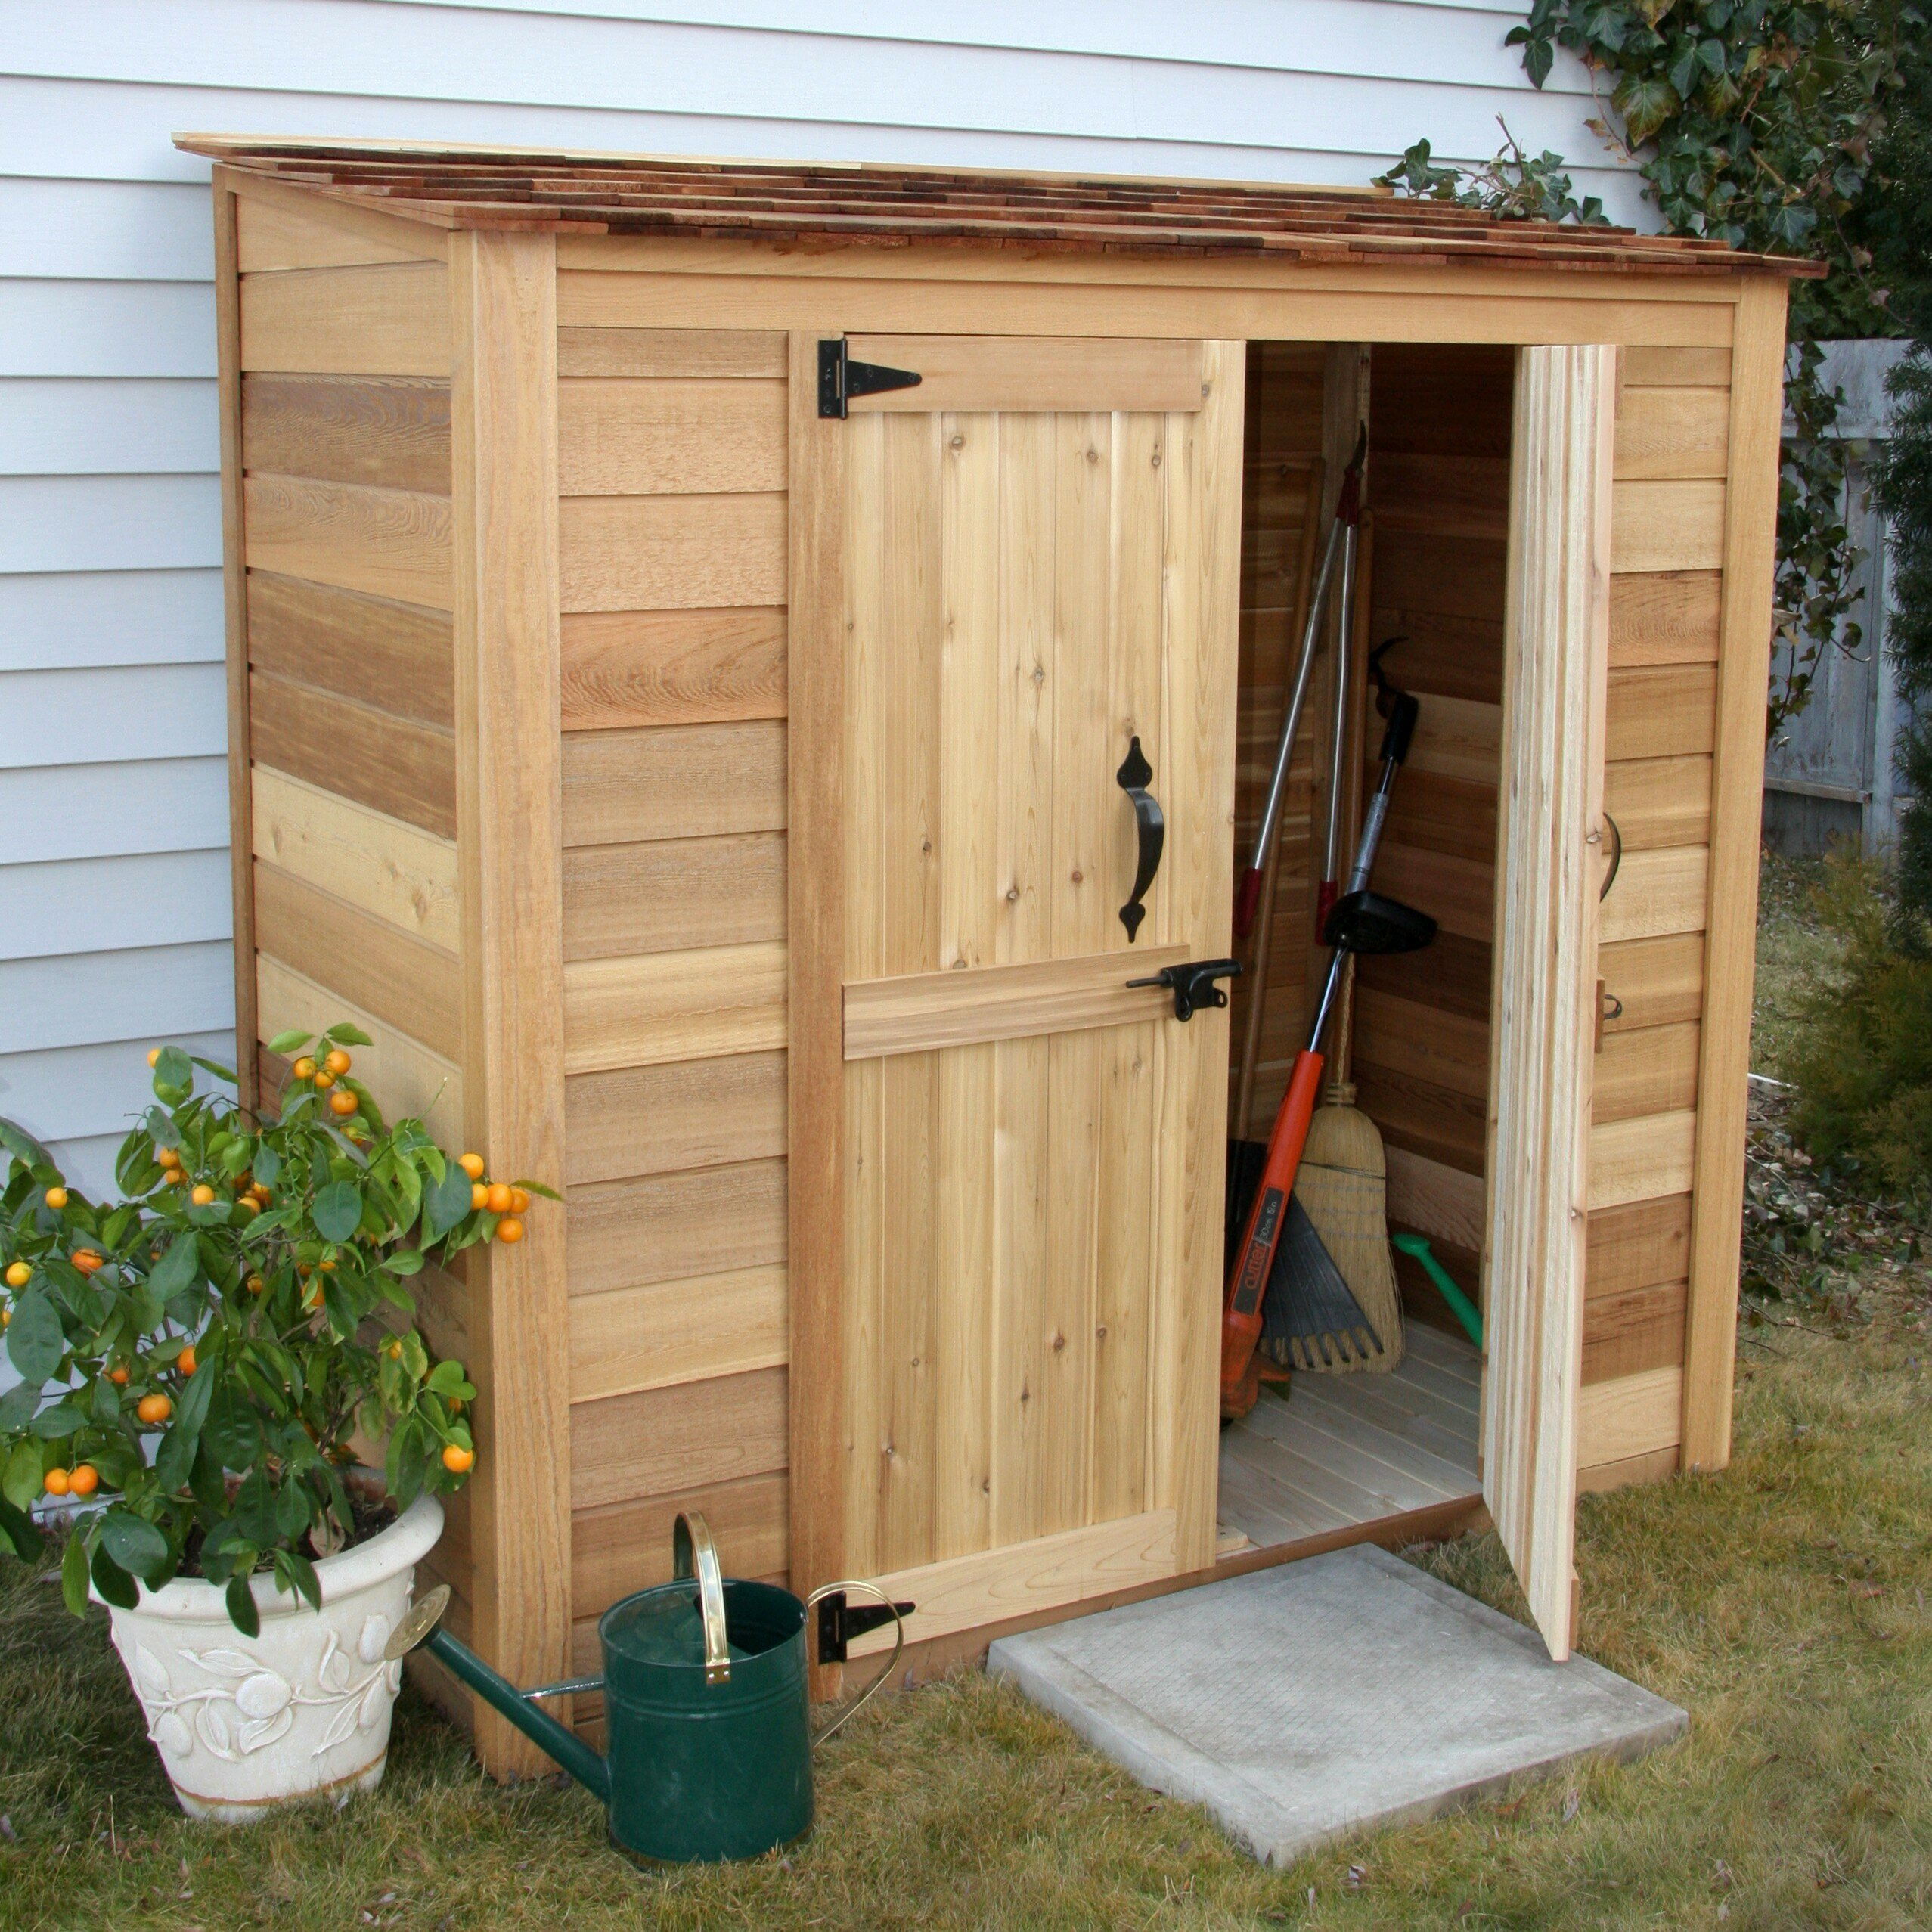 Chalet Nursery And Garden Center: Garden Chalet 6 Ft. W X 3 Ft. D Wood Lean-To Shed